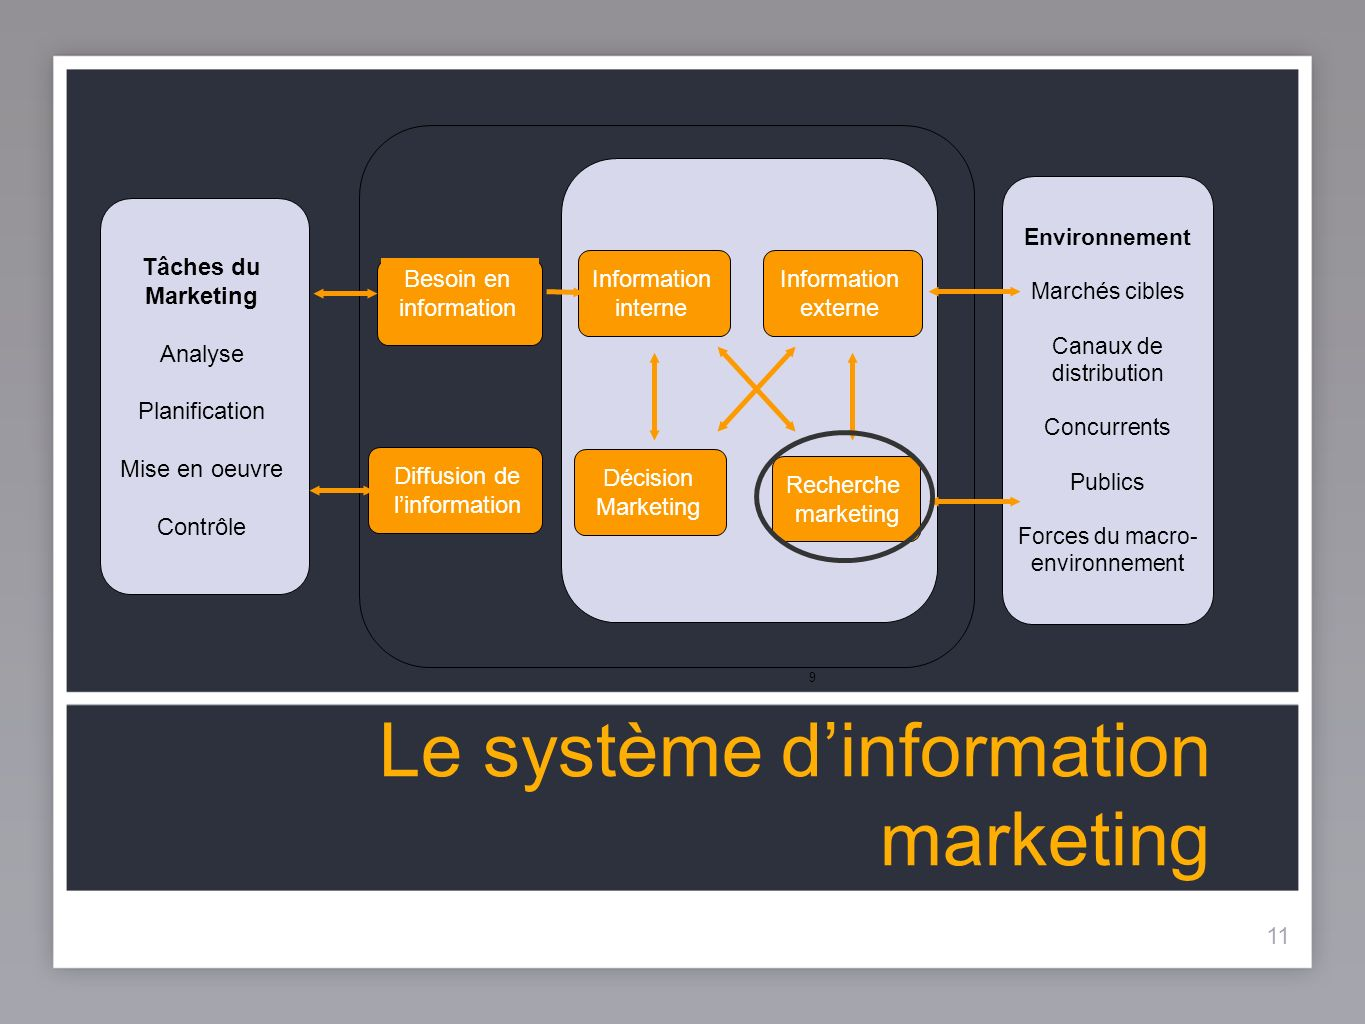 11 Le système dinformation marketing 11 9 Tâches du Marketing Analyse Planification Mise en oeuvre Contrôle Environnement Marchés cibles Canaux de distribution Concurrents Publics Forces du macro- environnement Information interne Décision Marketing Information externe Recherche marketing Besoin en information Diffusion de linformation